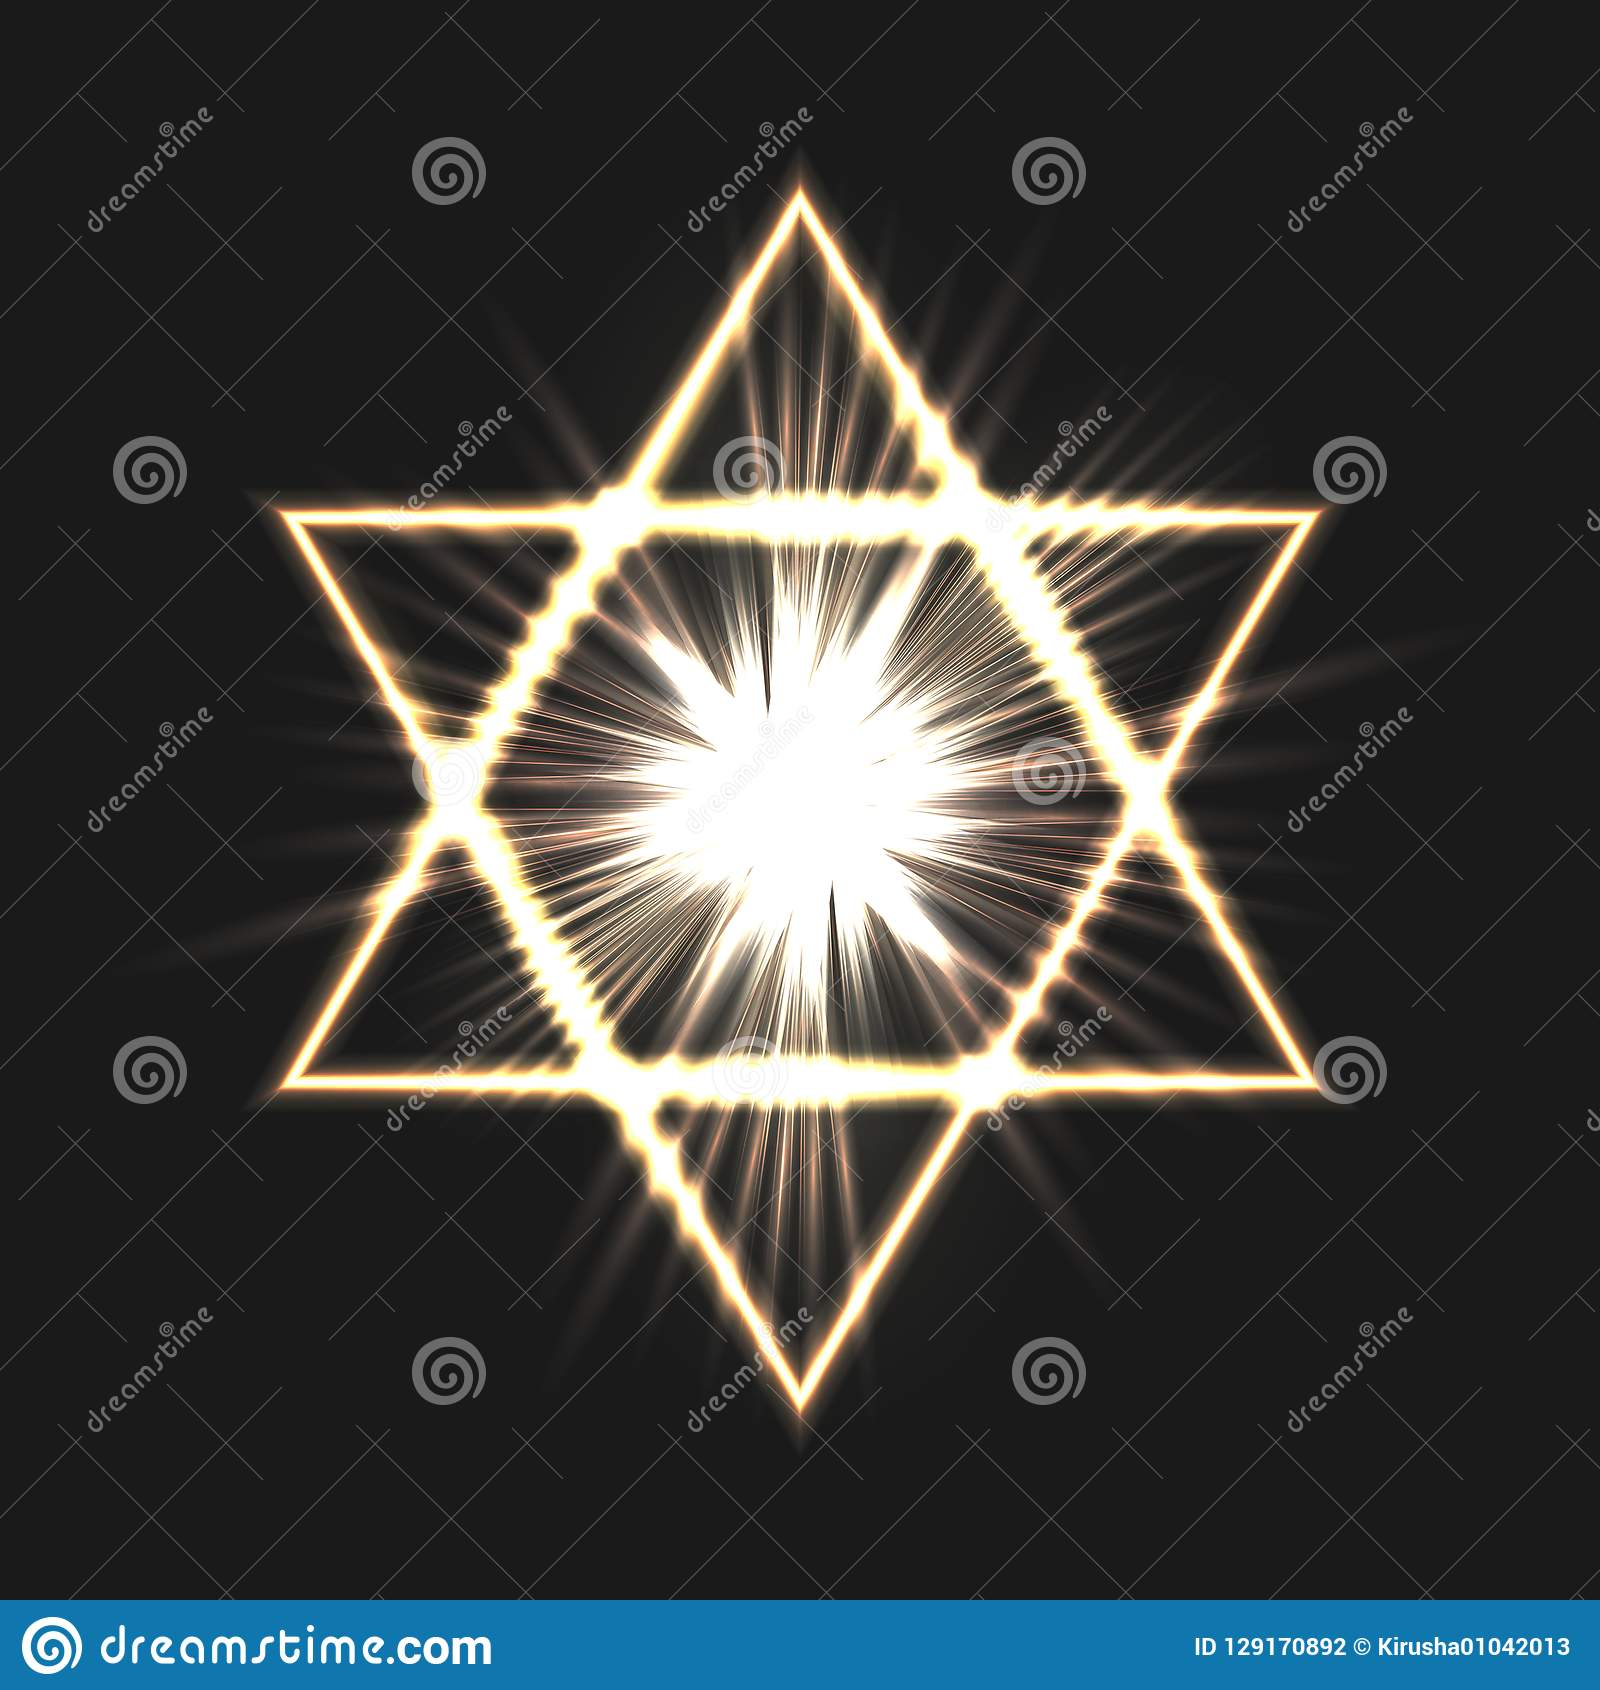 Star of David on a dark background.